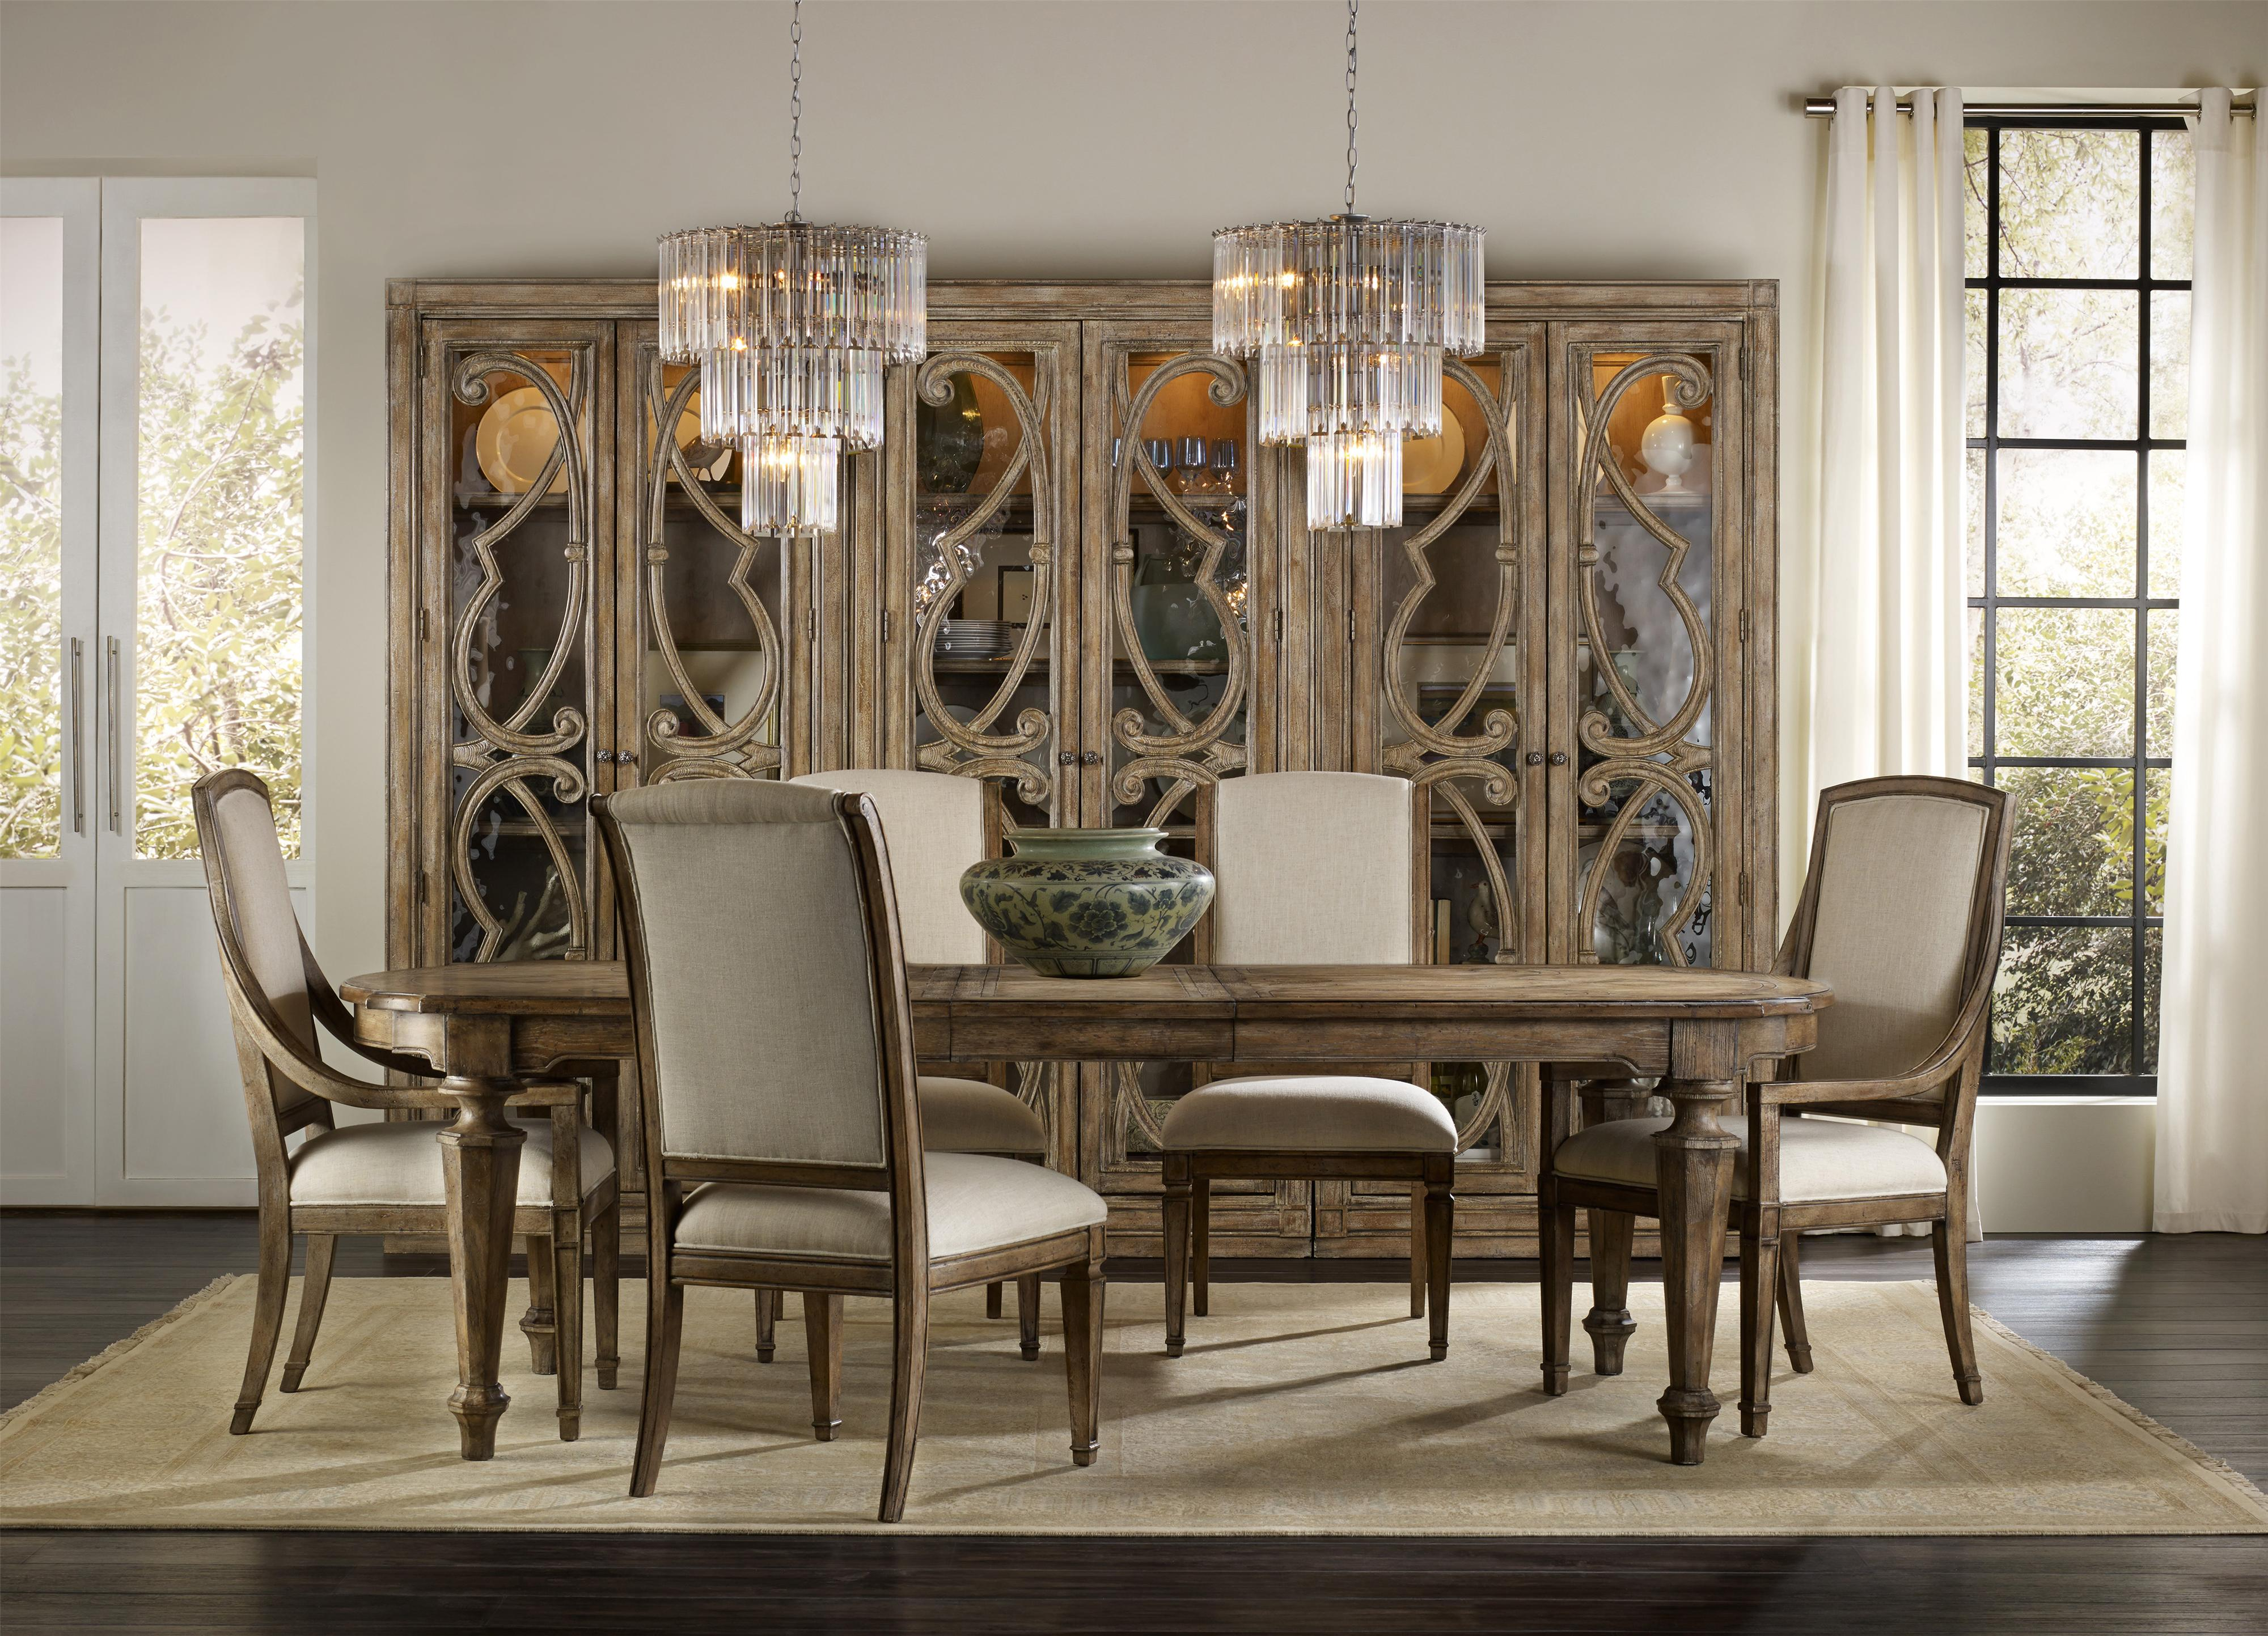 Merveilleux Hooker Furniture Solana Formal Dining Room Group   Item Number: 5291 F Dining  Room 1